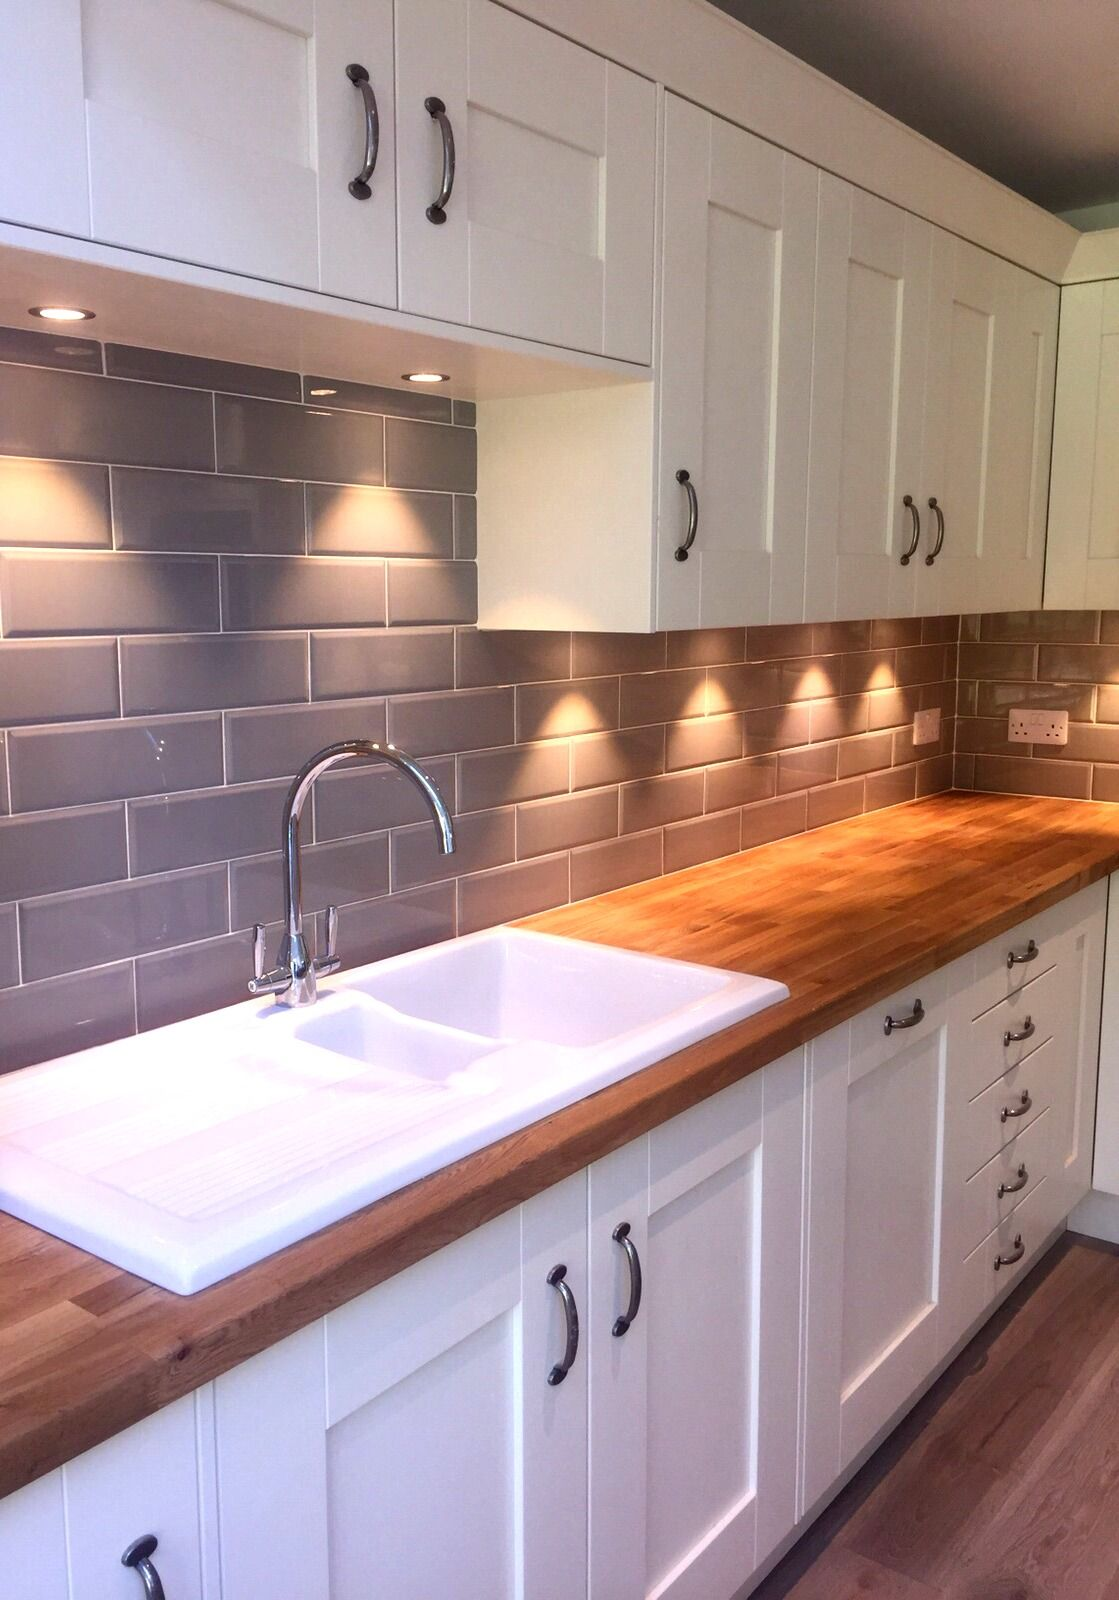 our edge grigio tiles look lovely in a cream kitchen with